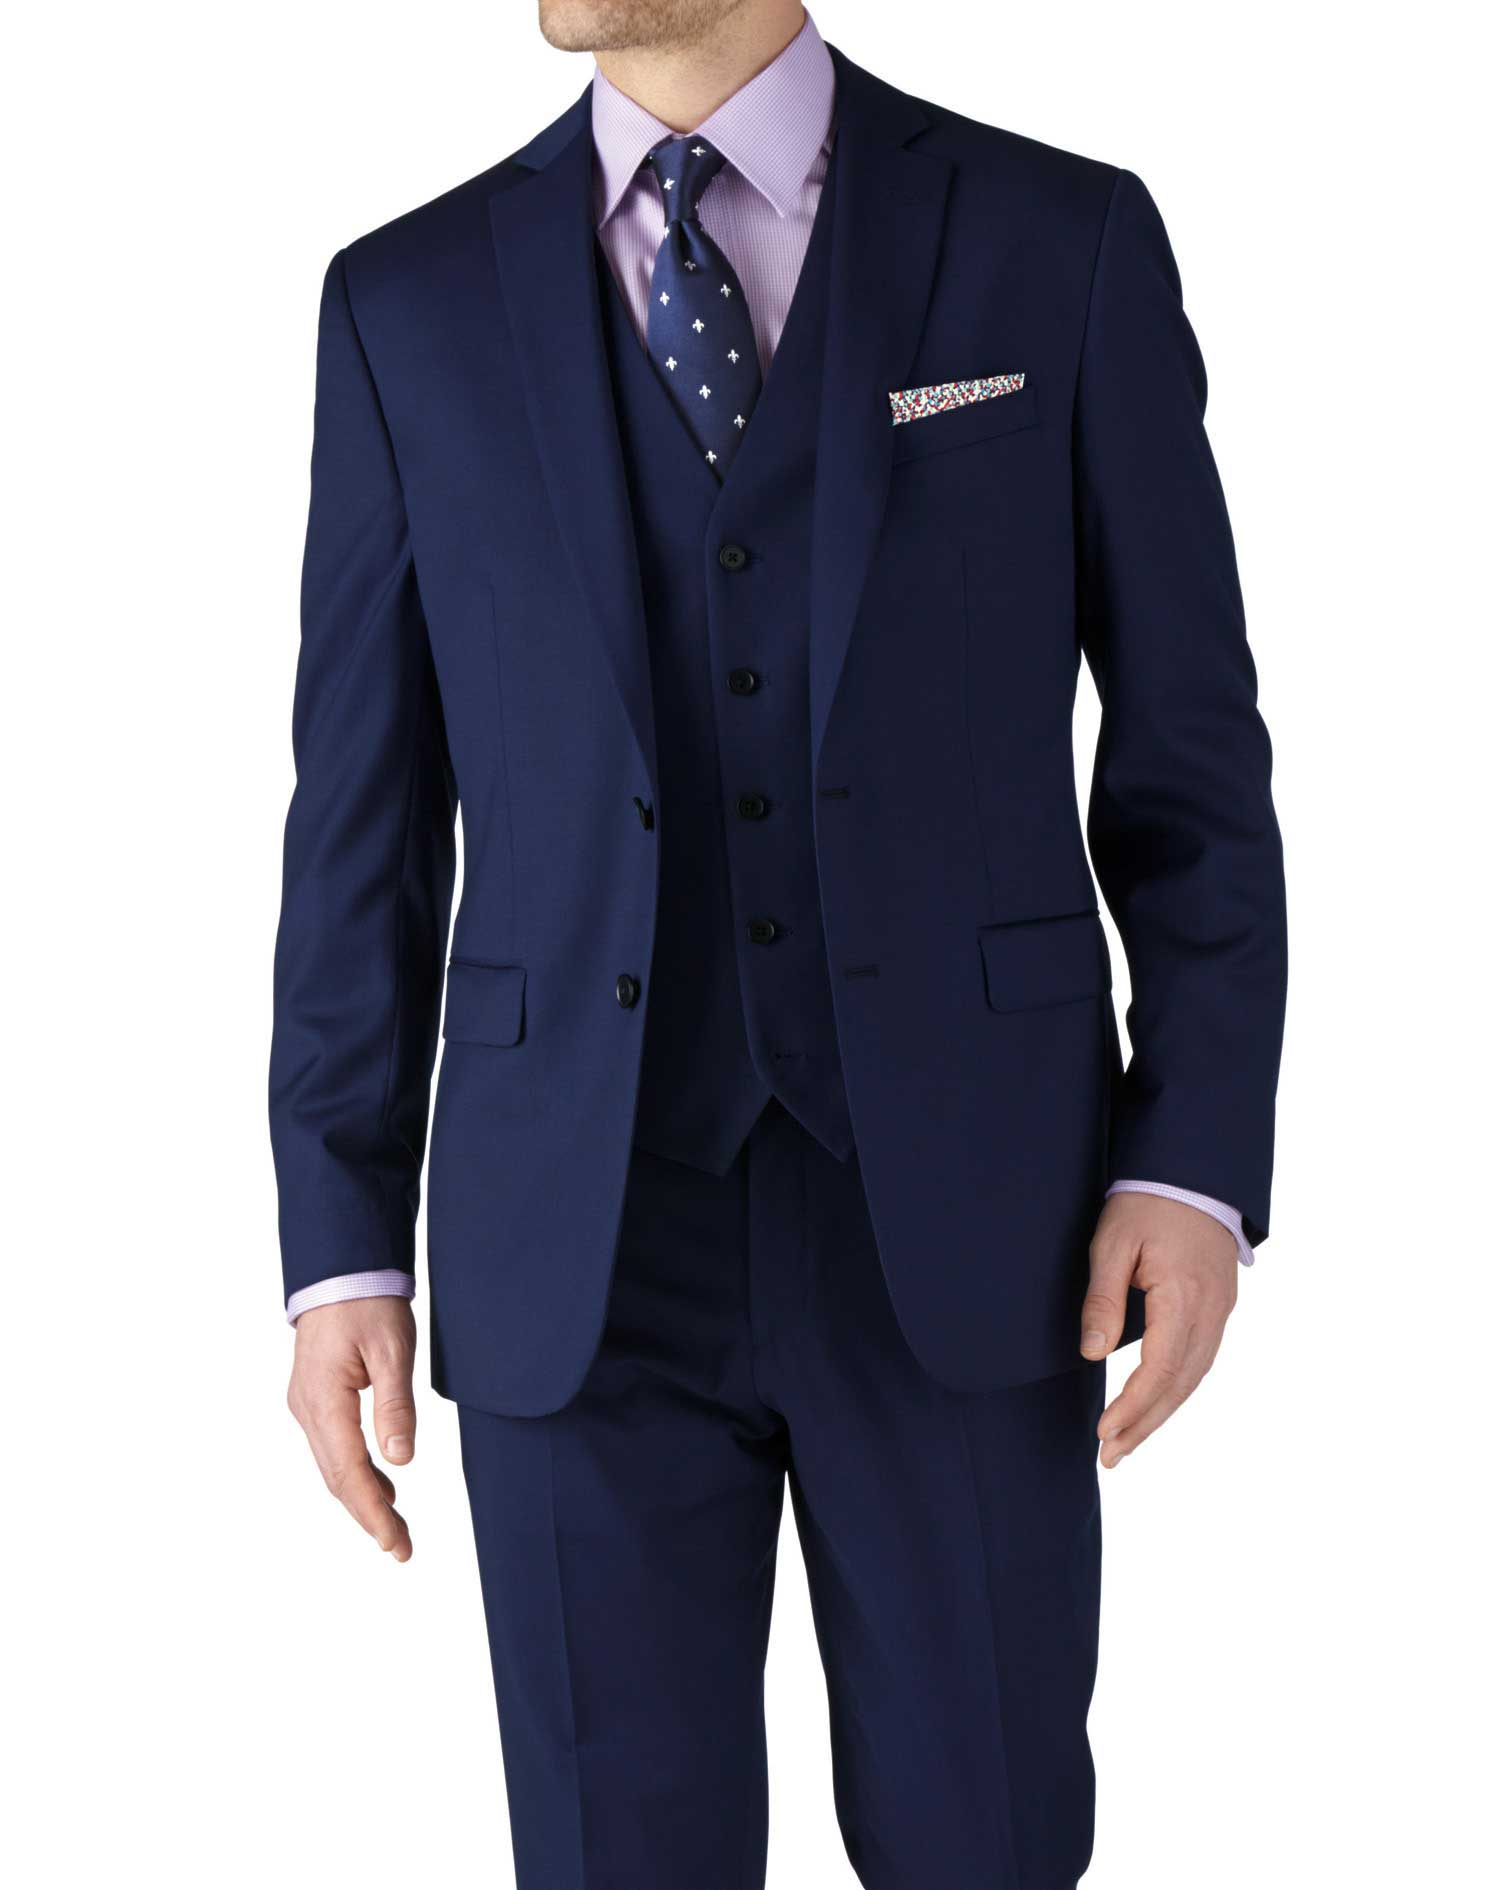 Royal Blue Classic Fit Twill Business Suit Wool Jacket Size 42 Regular by Charles Tyrwhitt